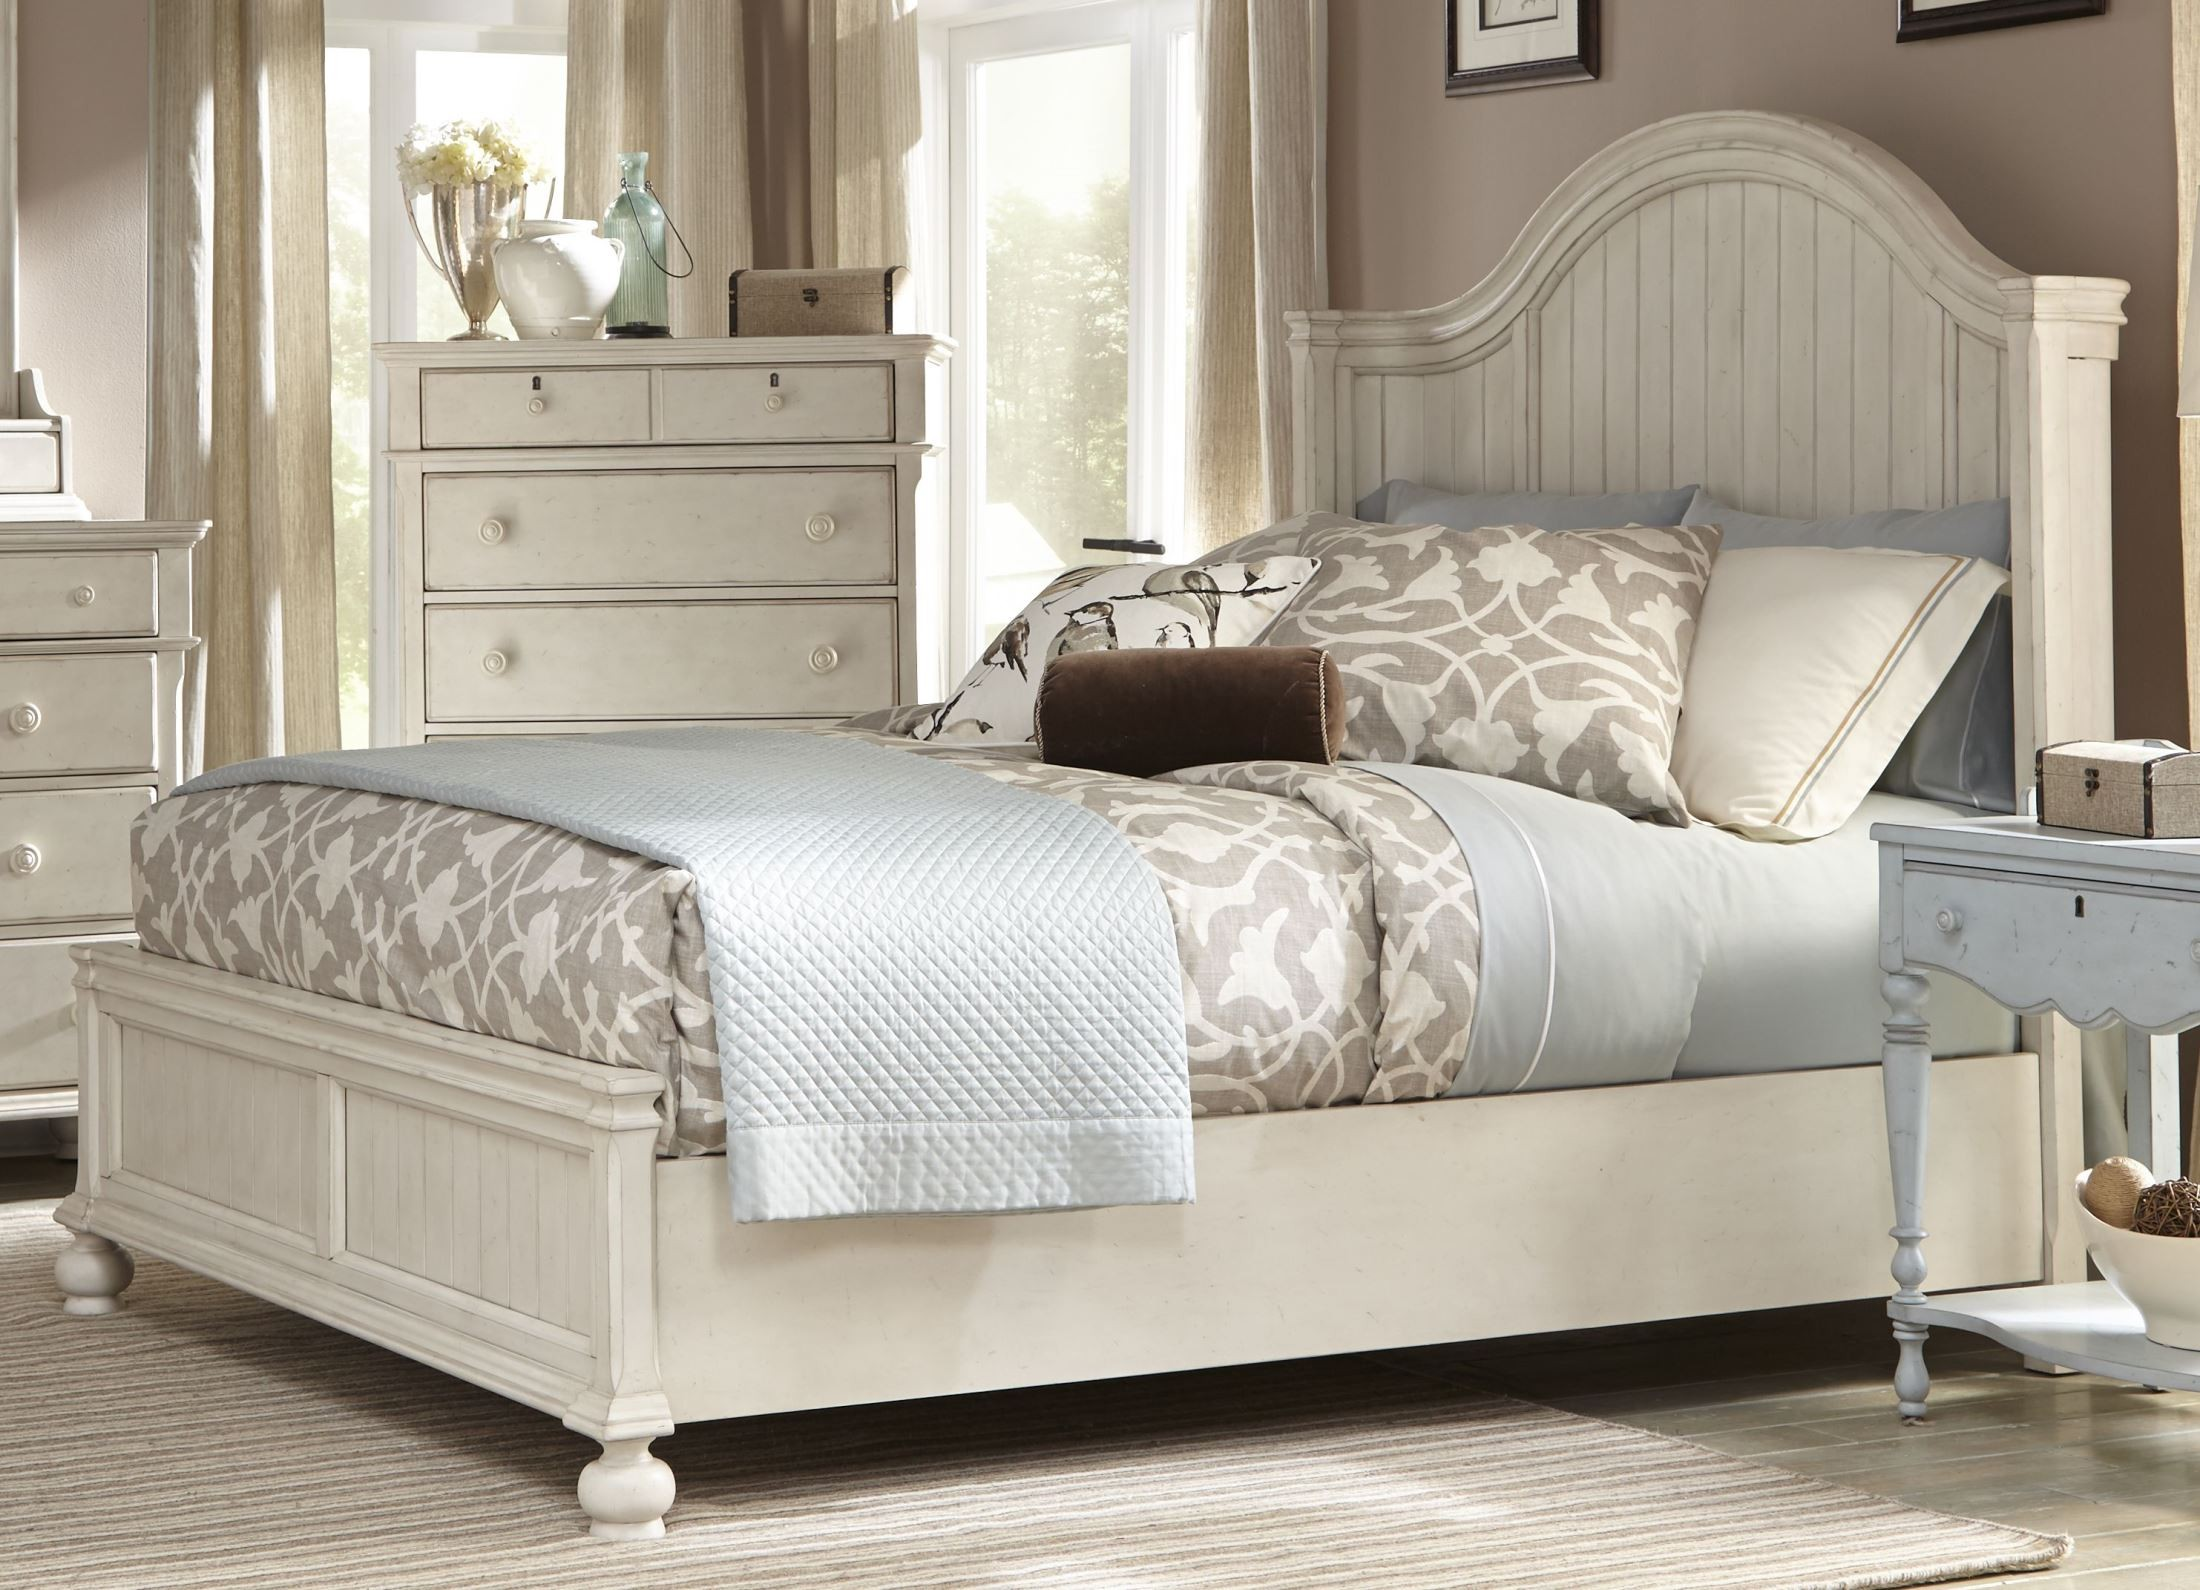 Newport Antique White King Panel Bed From American